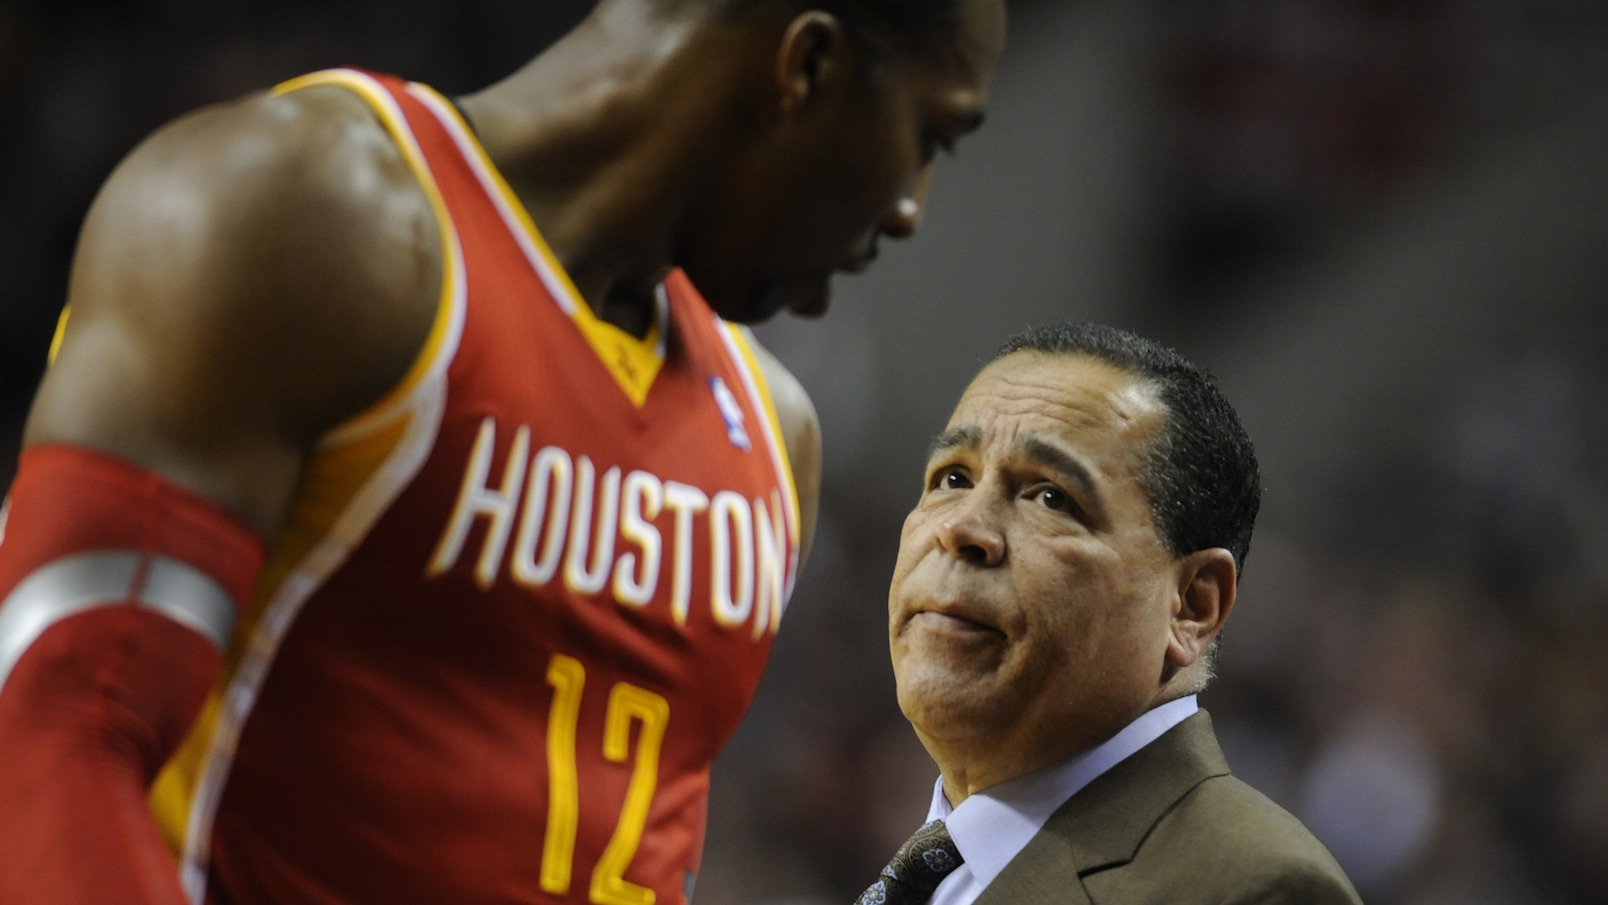 Houston Rockets assistant coach Kelvin Sampson speaks with Dwight Howard (12) during an NBA basketball game in Portland, Ore.,Thursday Dec. 12, 2013.  (AP Photo/Greg Wahl-Stephens)